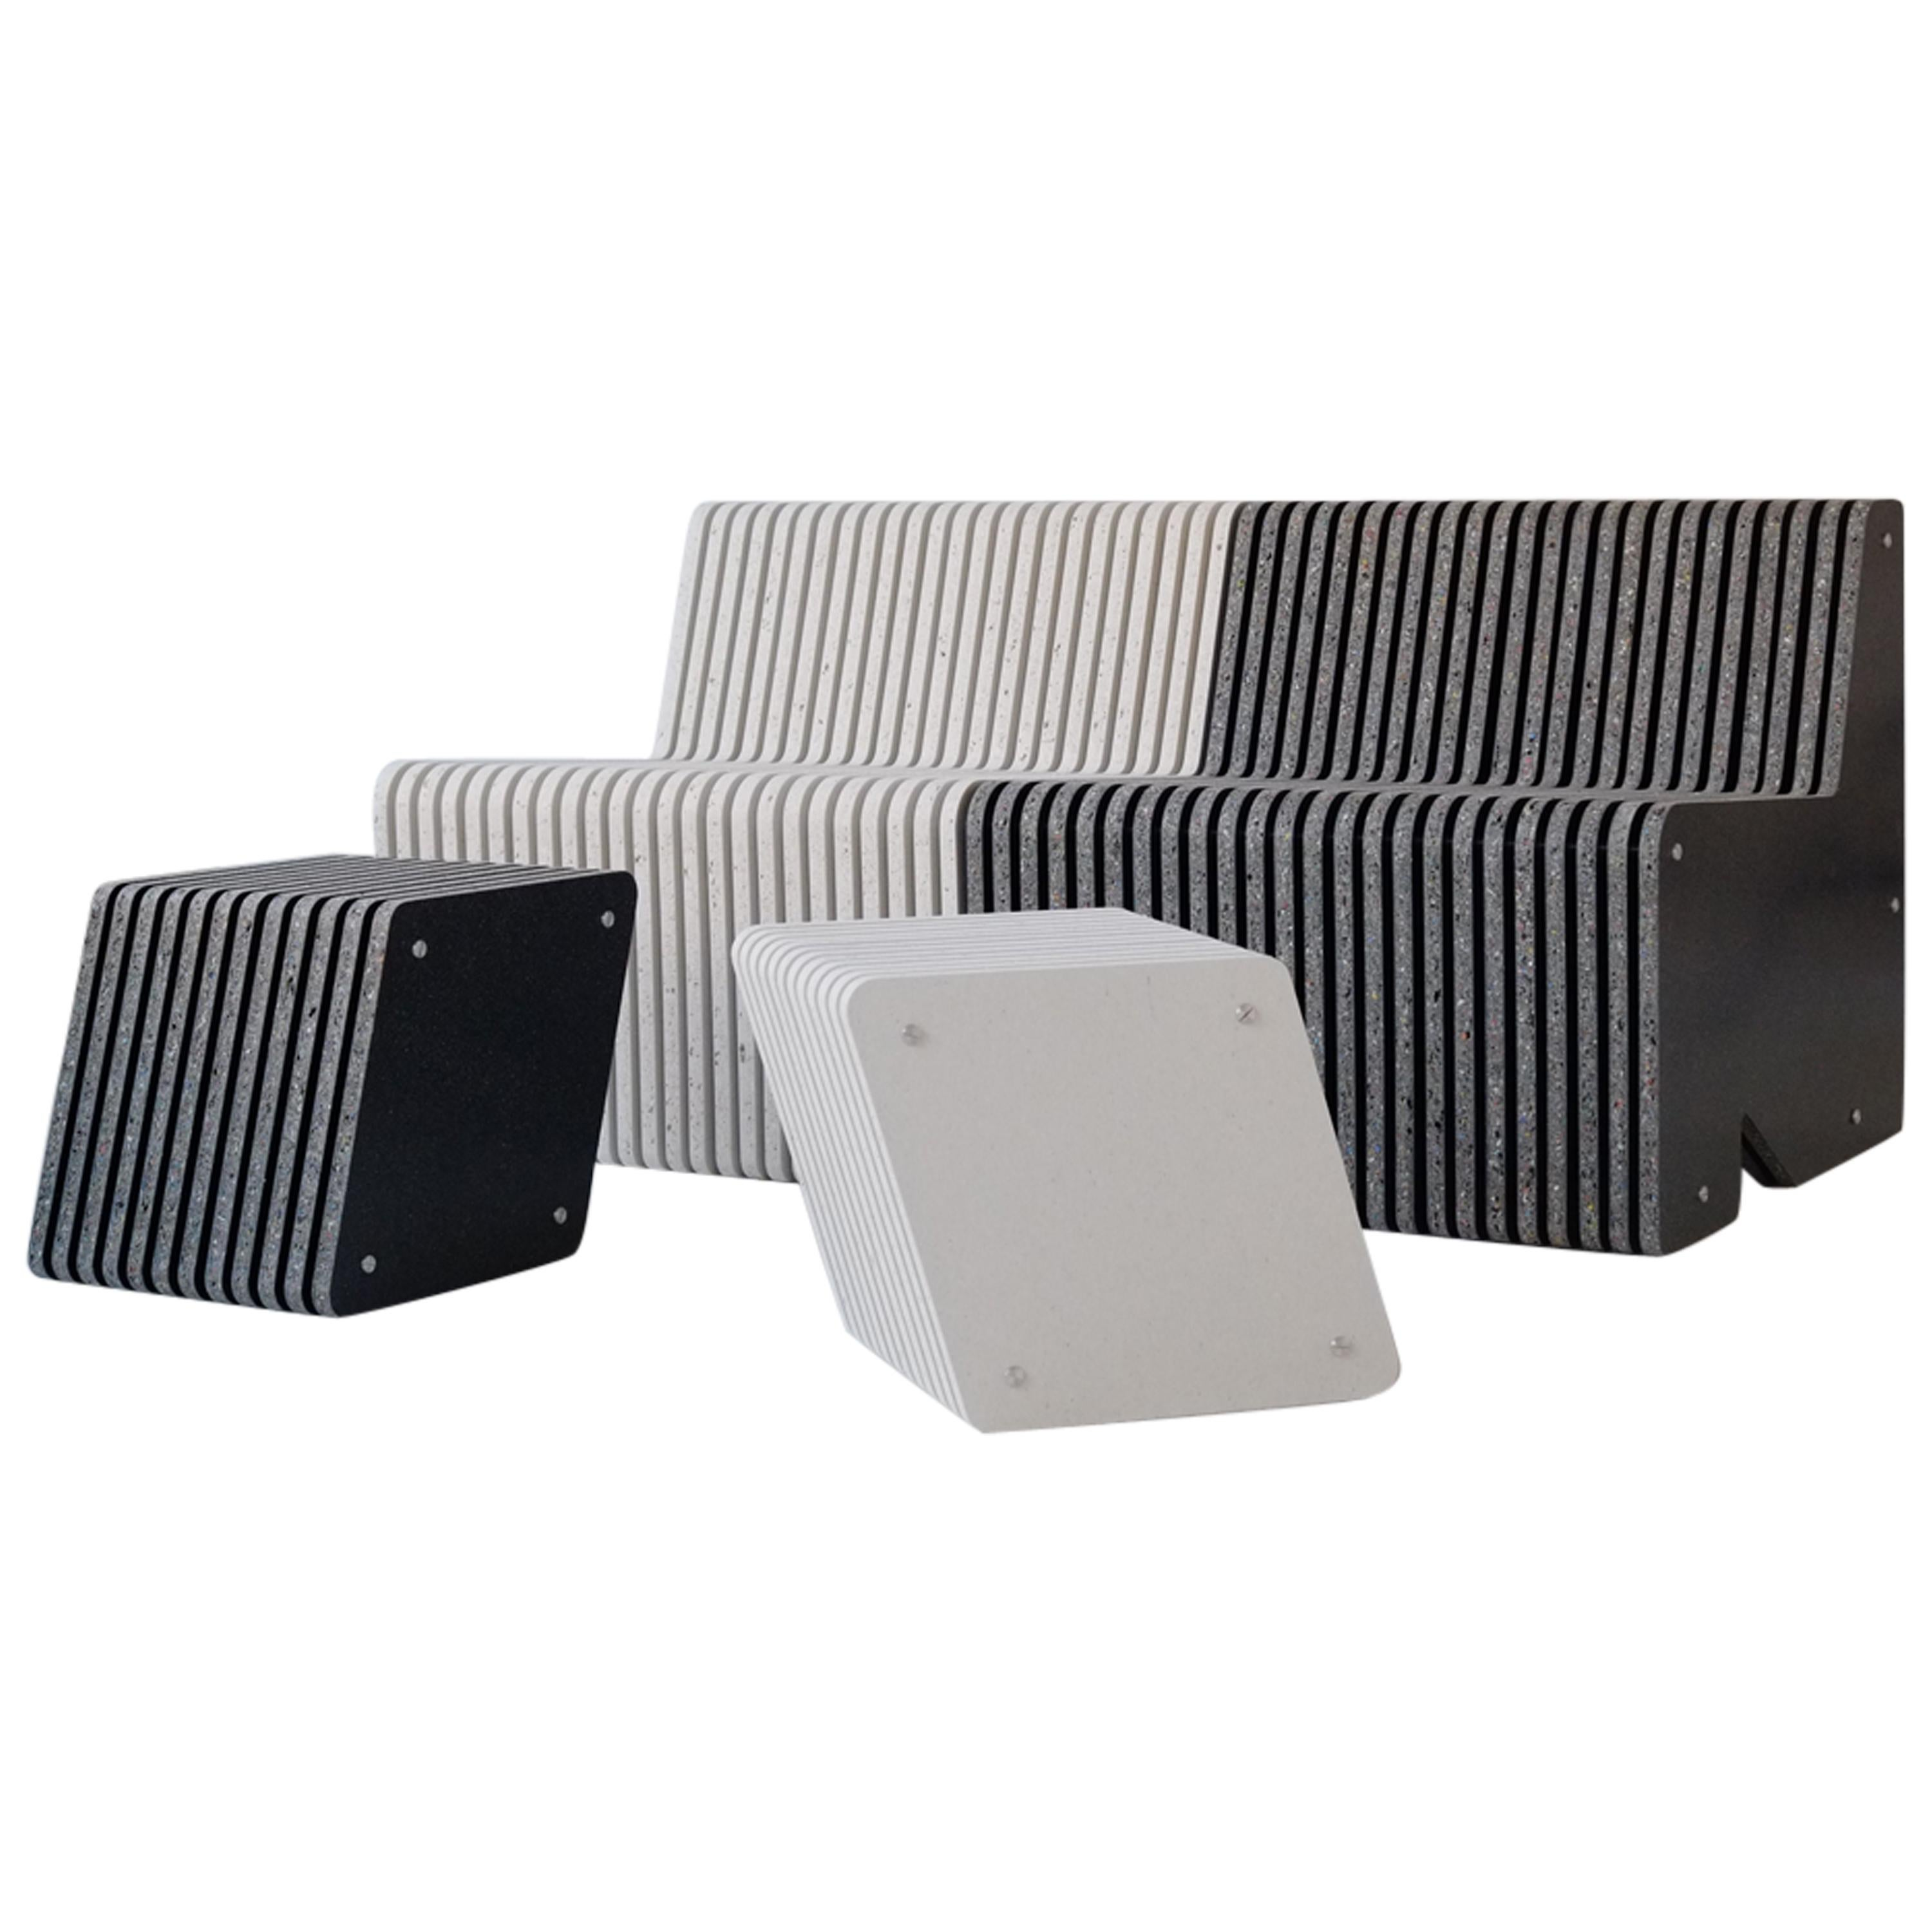 Sustainable Indoor or Outdoor Bench Seating - Jää Sofa and Side Table Set